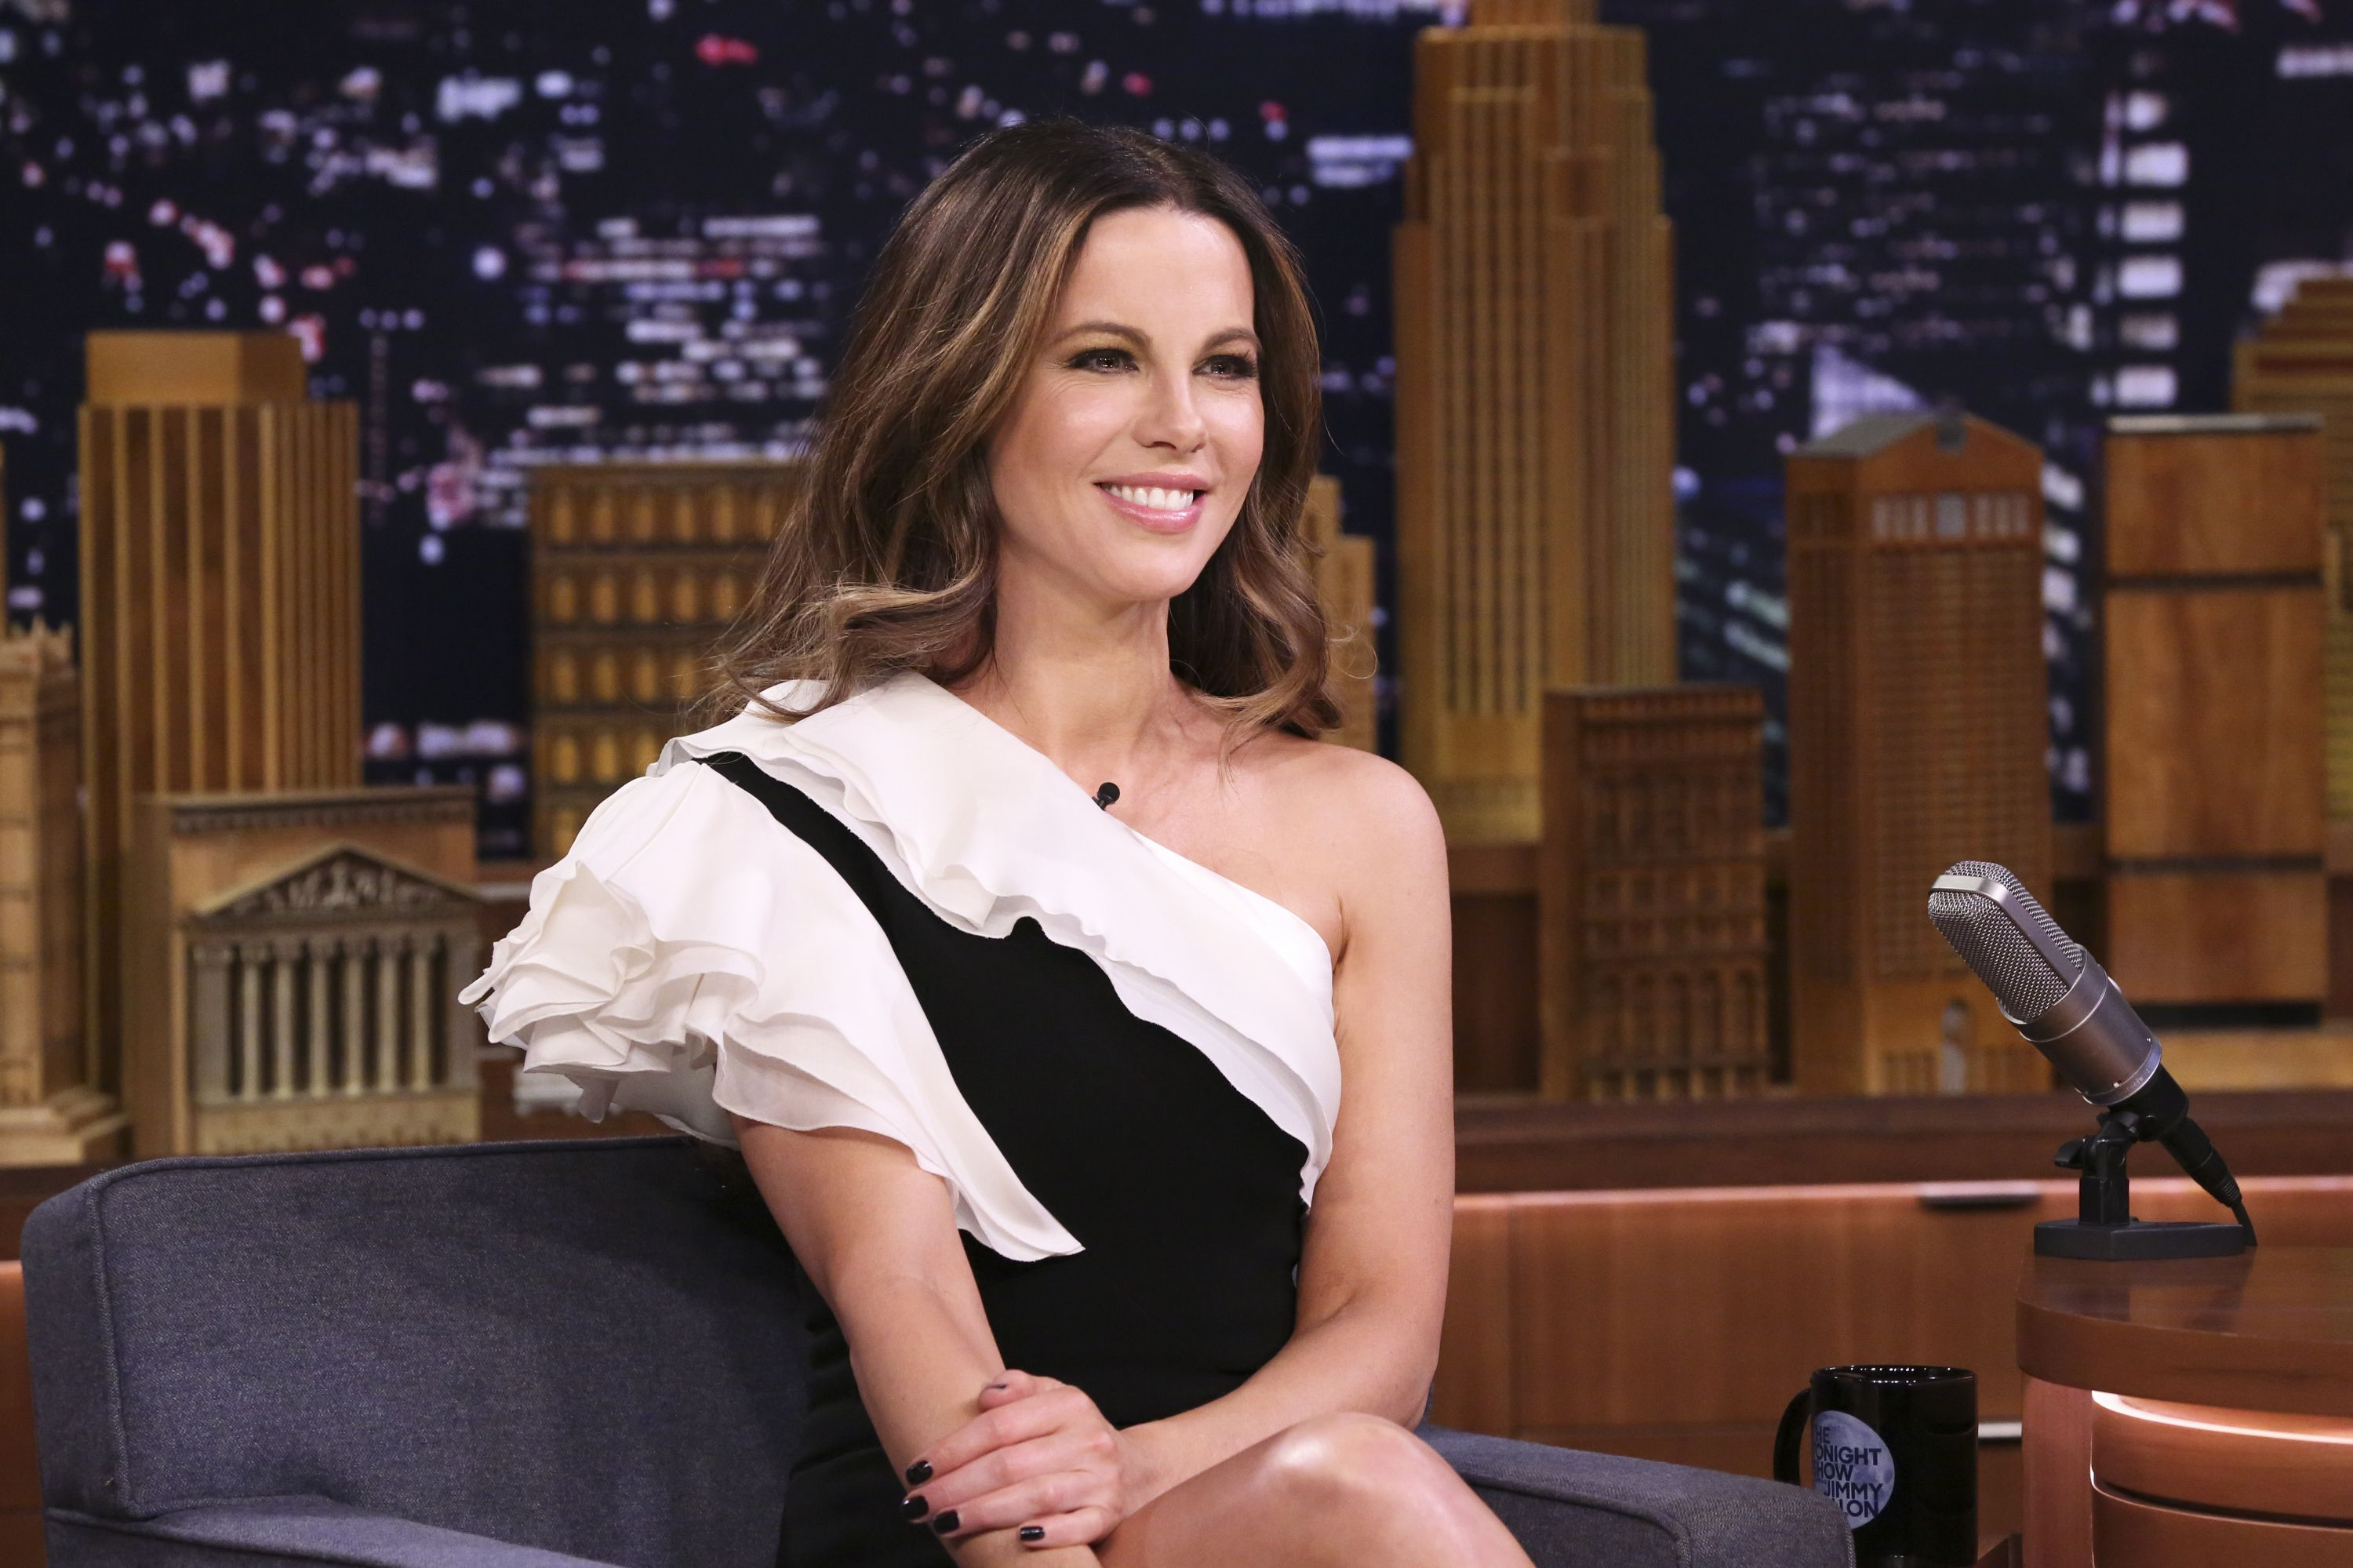 Watch Kate Beckinsale Crush a Series of Overhead Squats